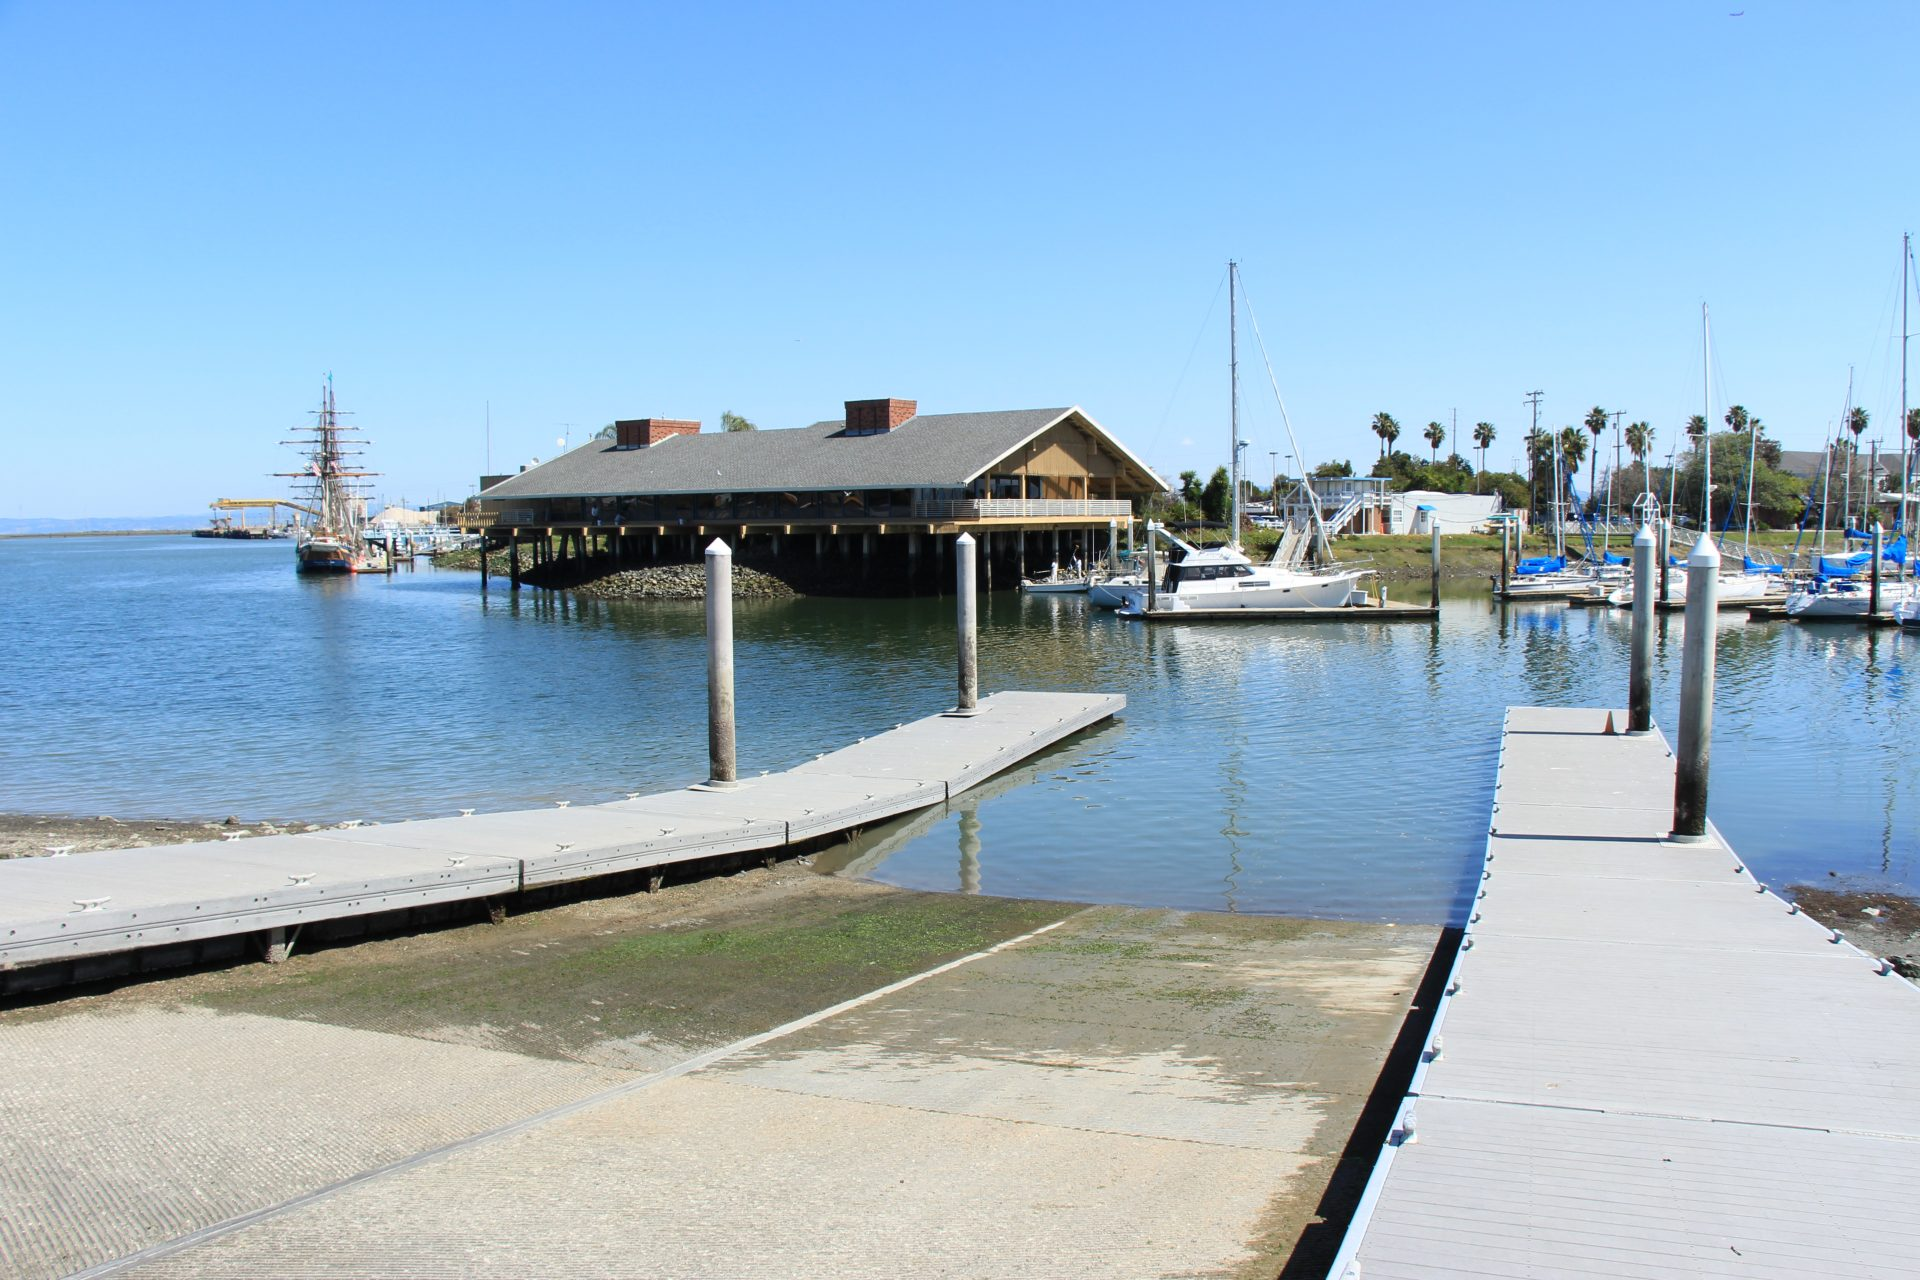 Boat ramp descending into water, with sailboats moored across the channel